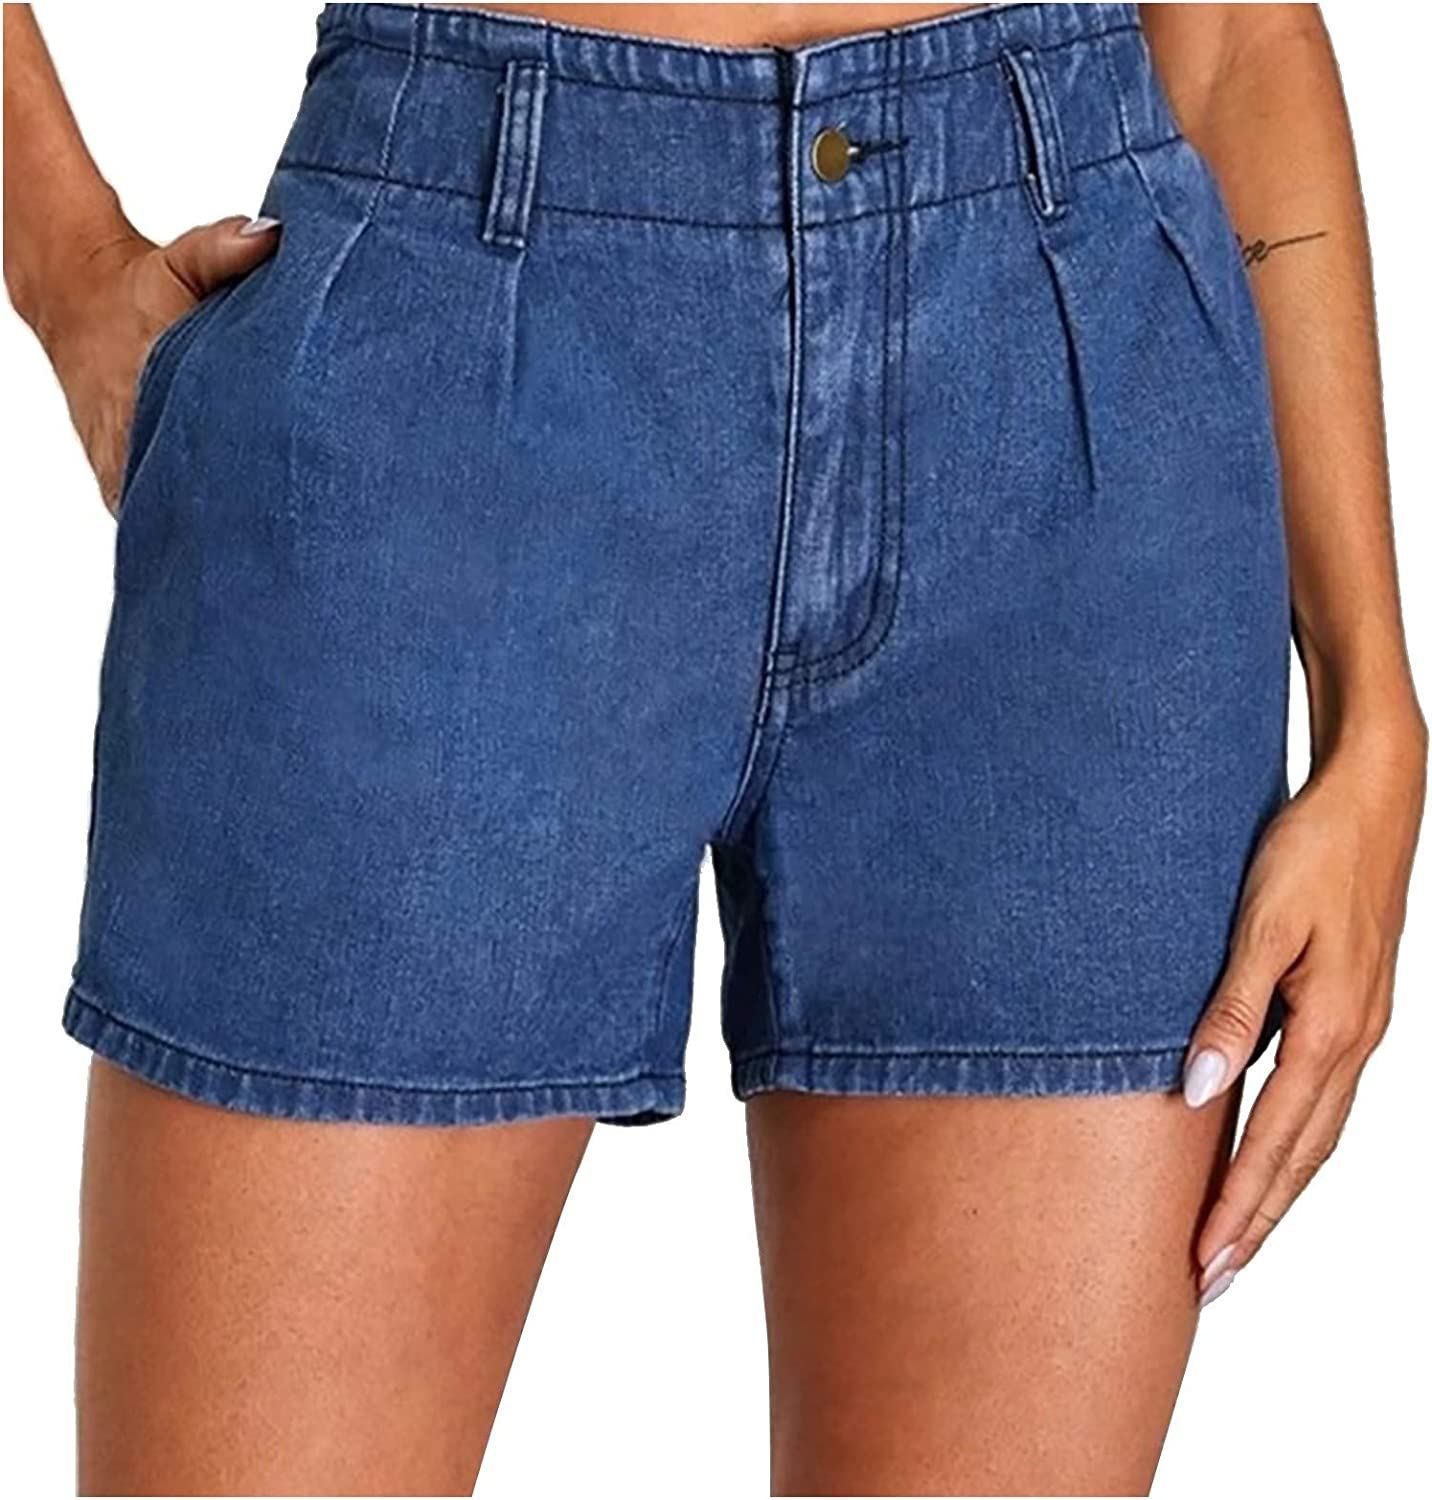 JPVDPA Women's High Waist Denim Jeans Casual Old Pocket Solid Color Jeans Doing Old Torns Shorts Pants